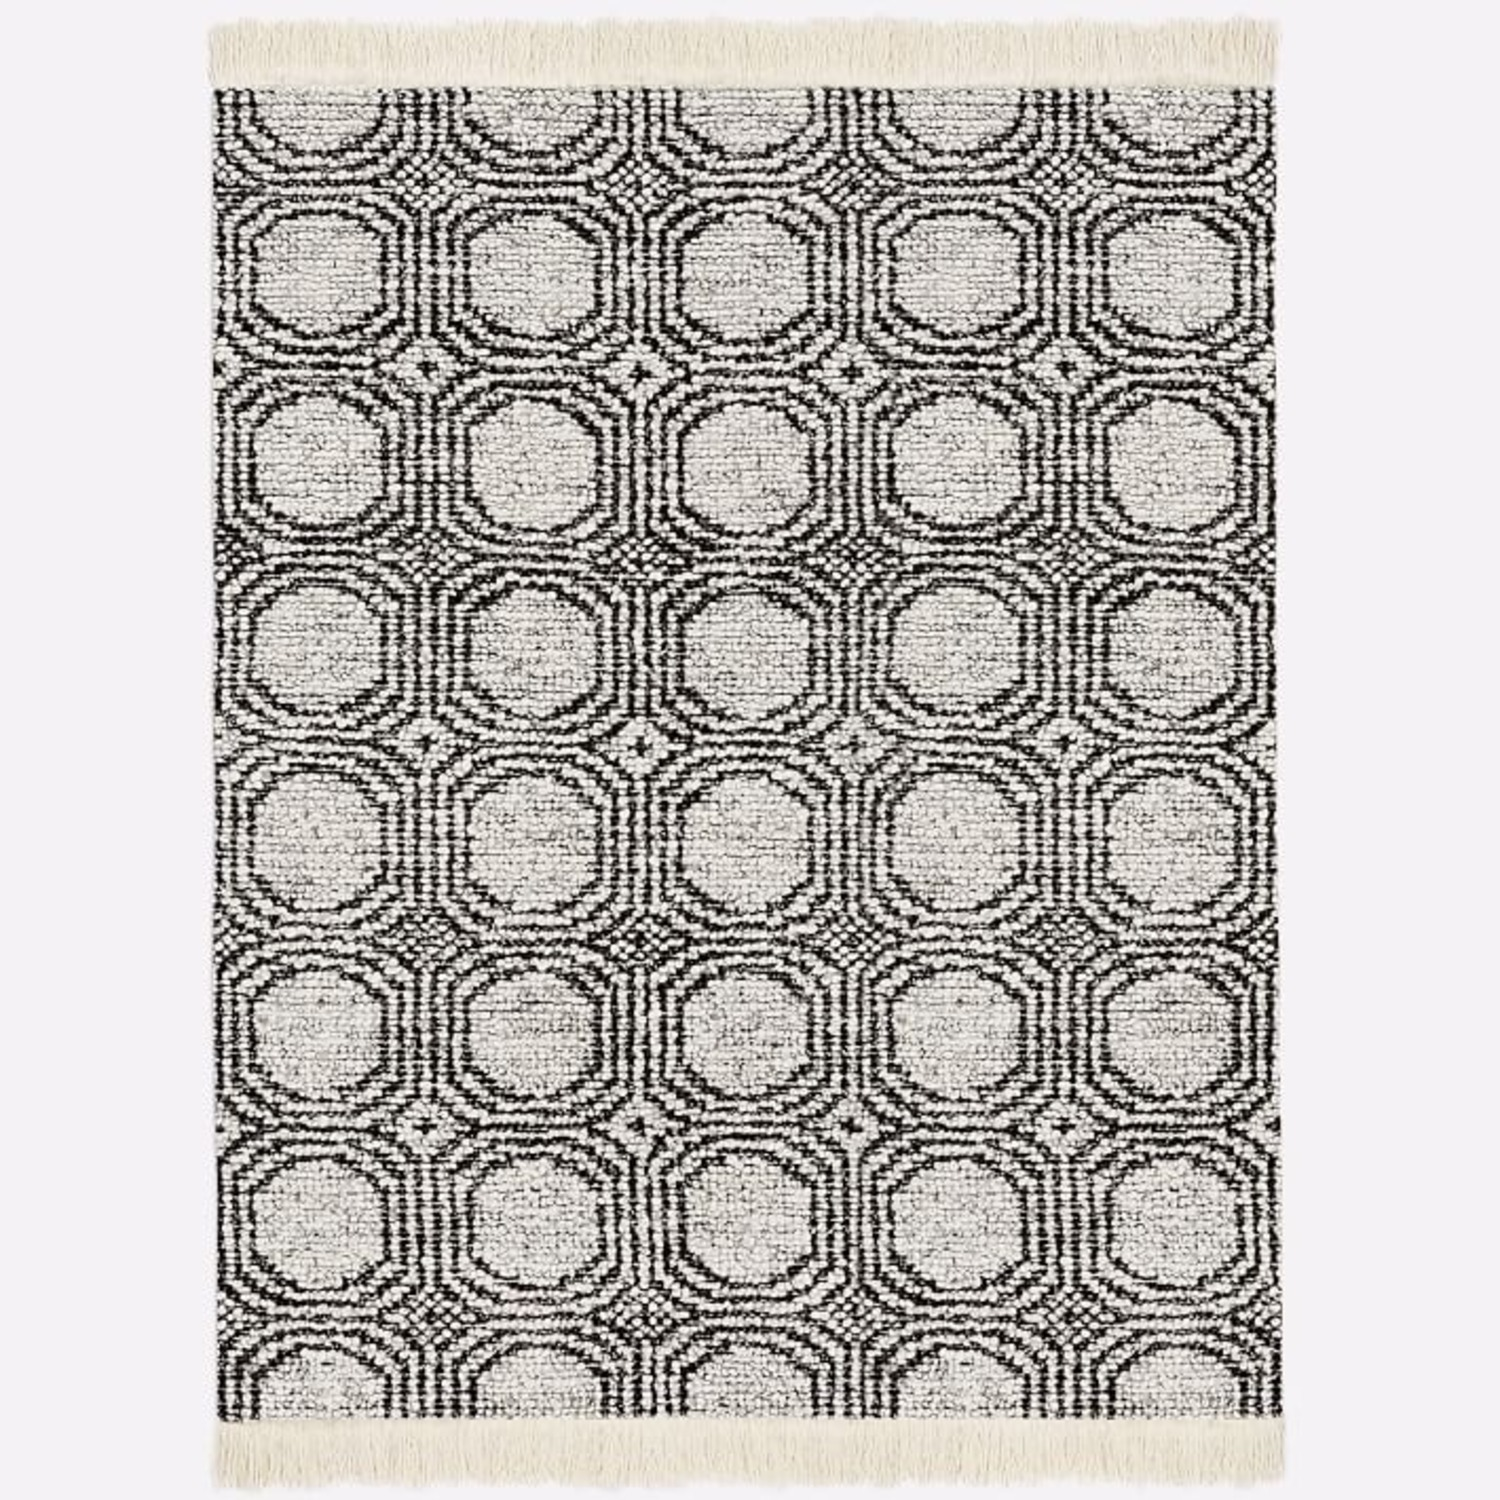 West Elm Concentric Circle Rug - image-3